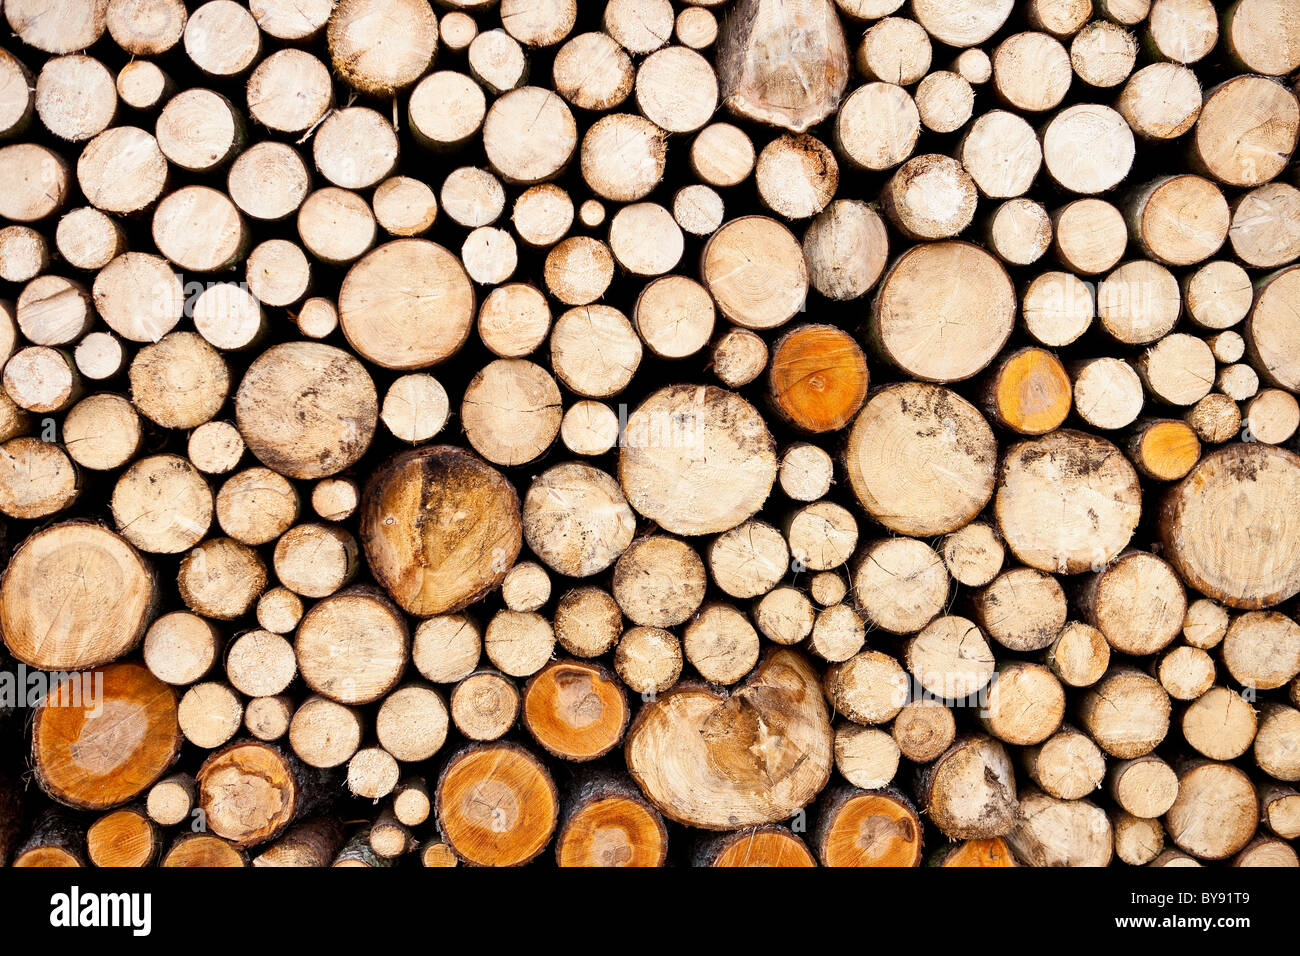 A pile of neatly cut and stacked logs - Stock Image